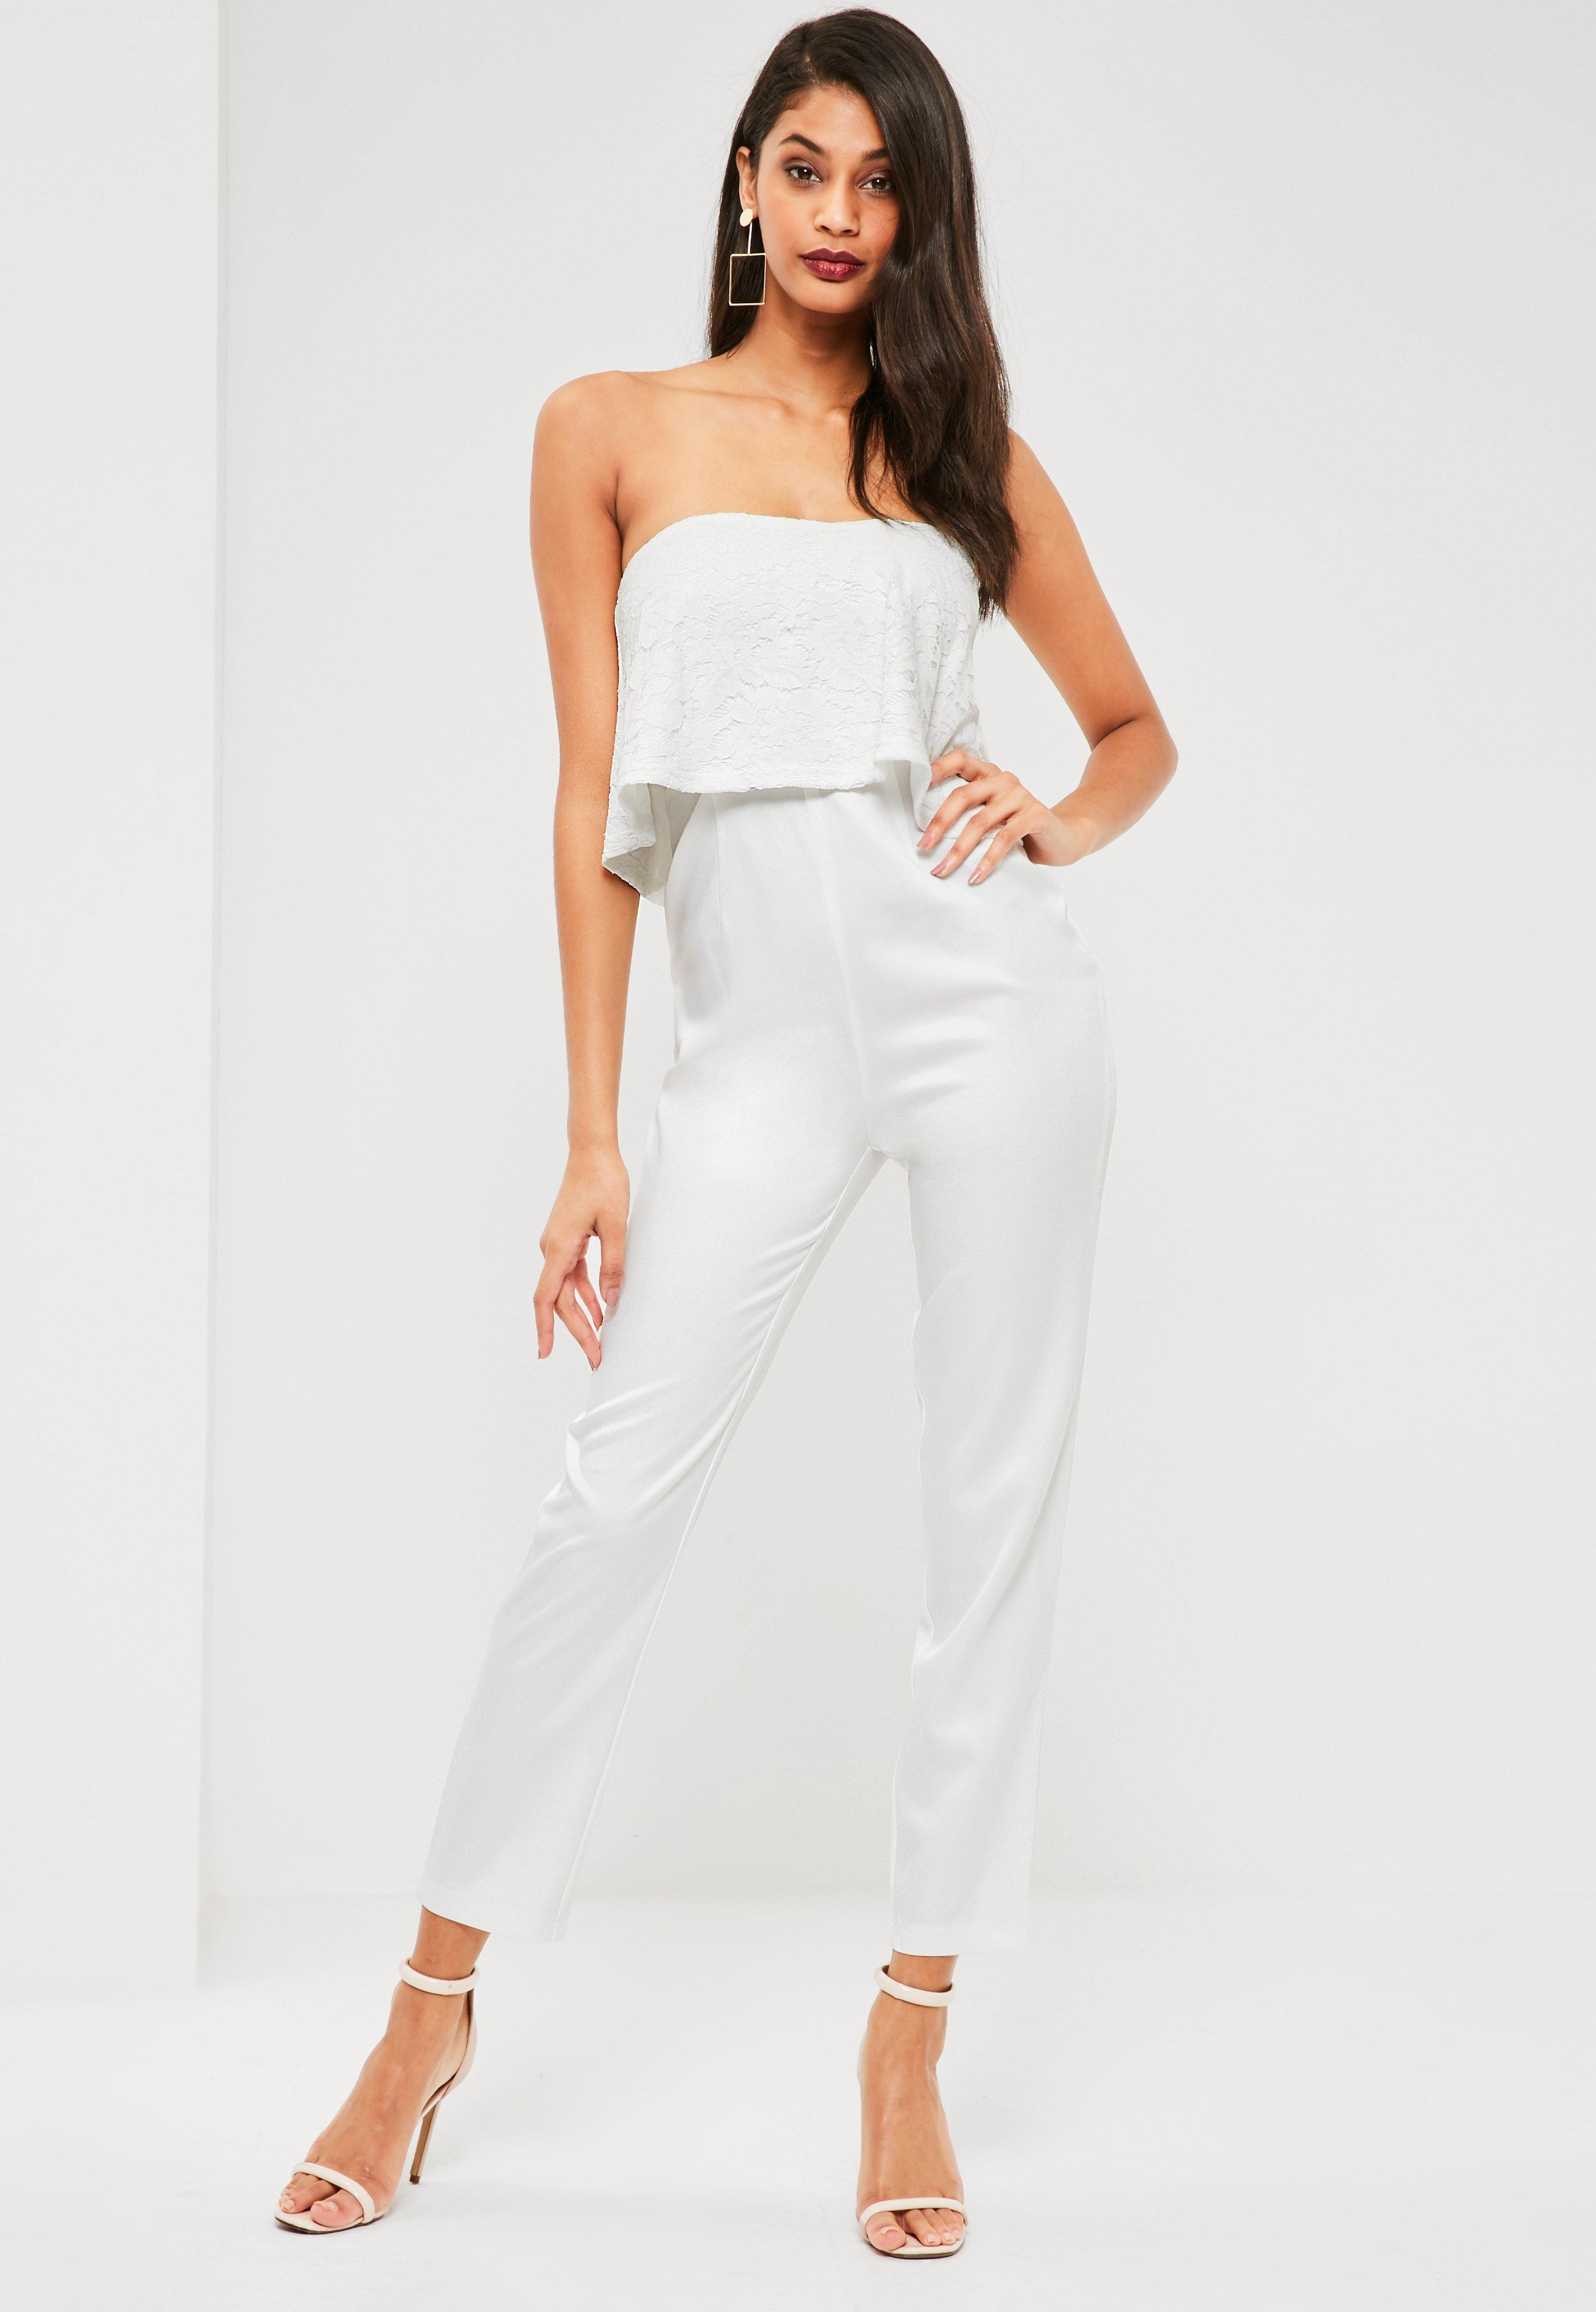 9b349494cef4 Gallery. Previously sold at  Missguided · Women s Bandeau Tops Women s  Ruffle Jumpsuits Women s Lace ...